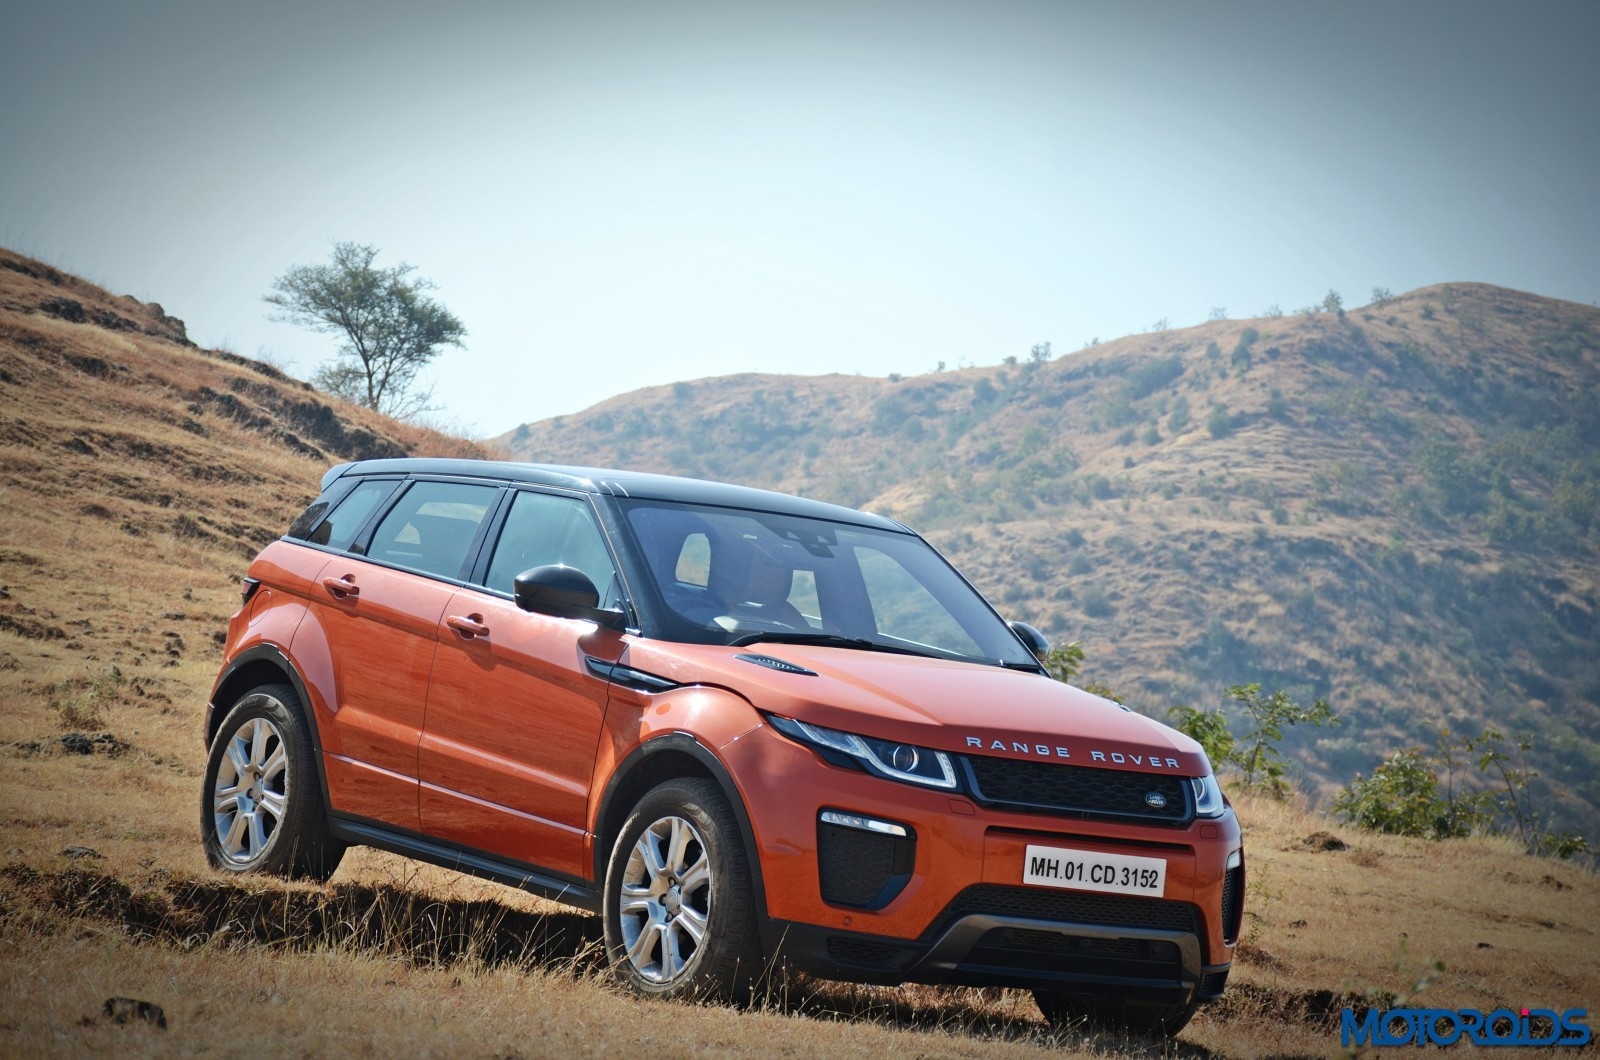 Range-Rover-Evoque-orange-6